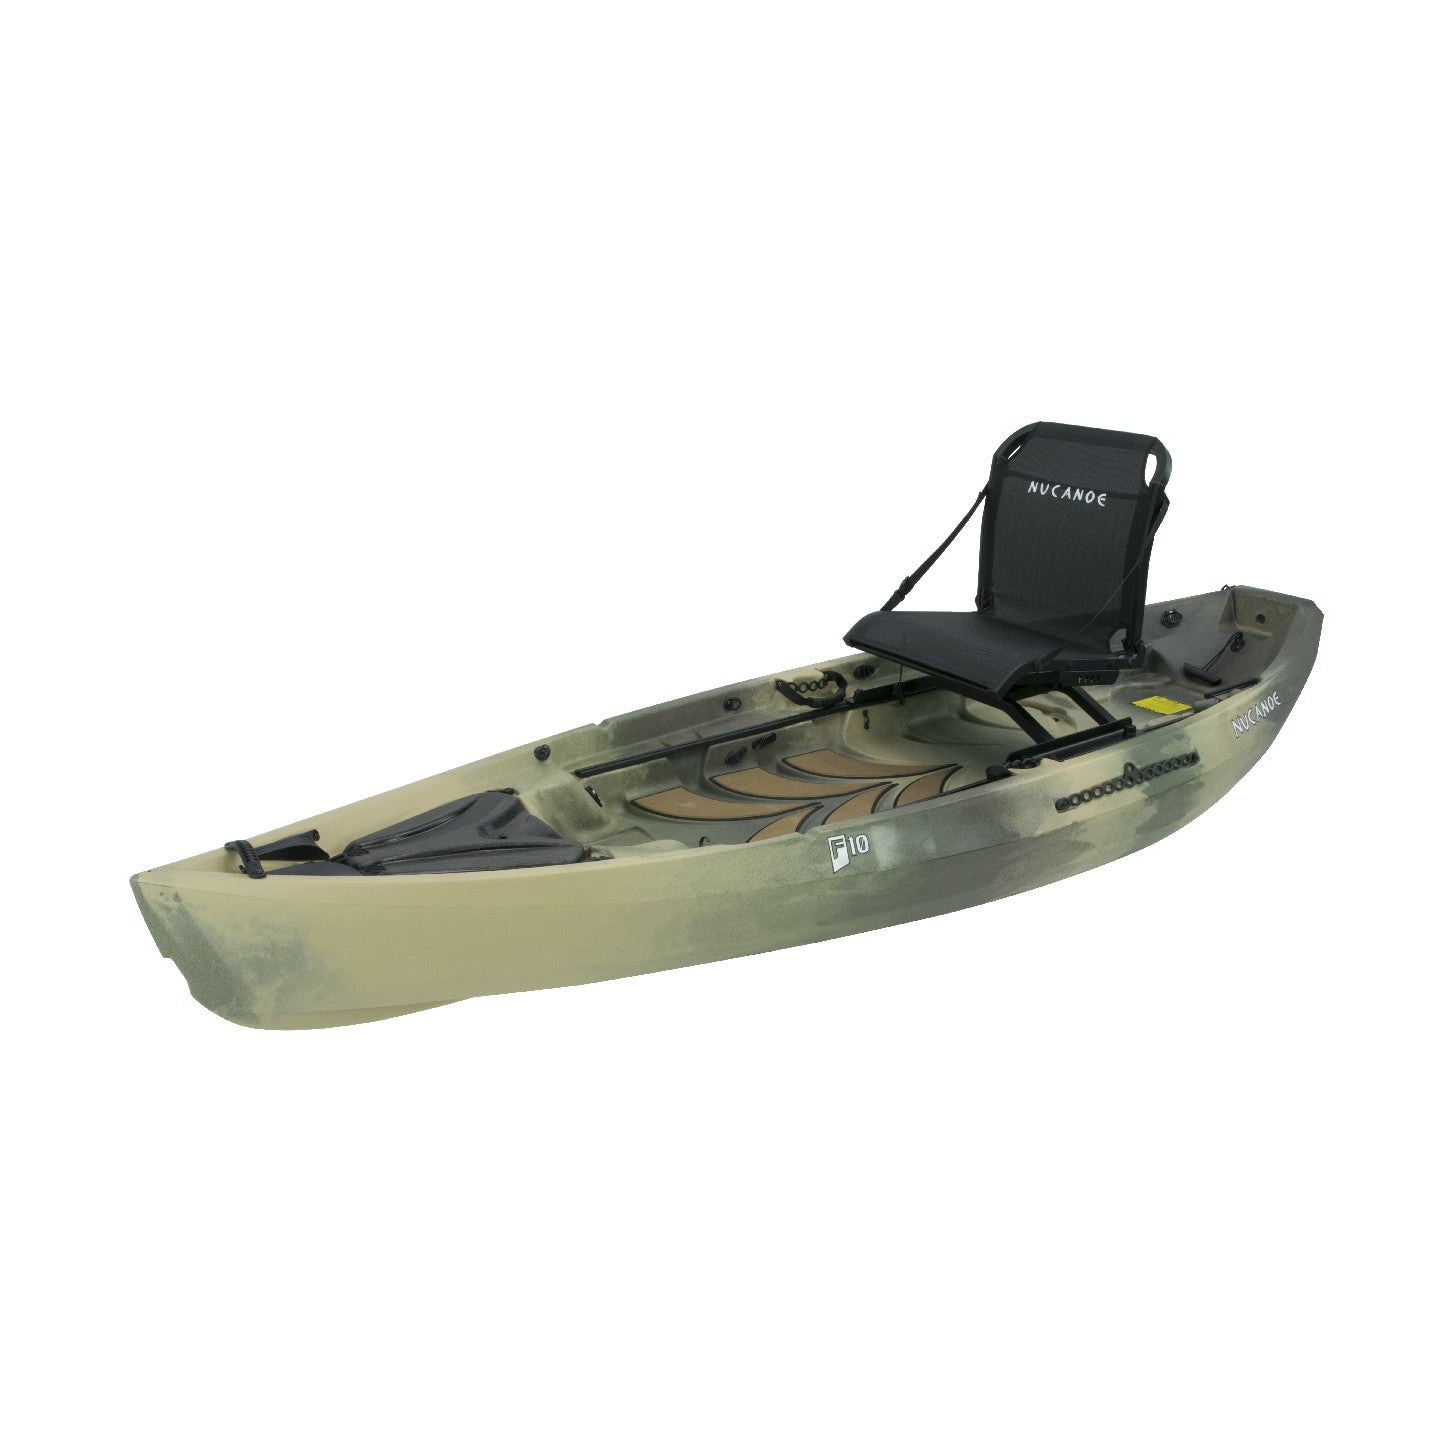 NuCanoe Frontier 10 F10 Fishing Kayak | 2020 - Kayak Creek